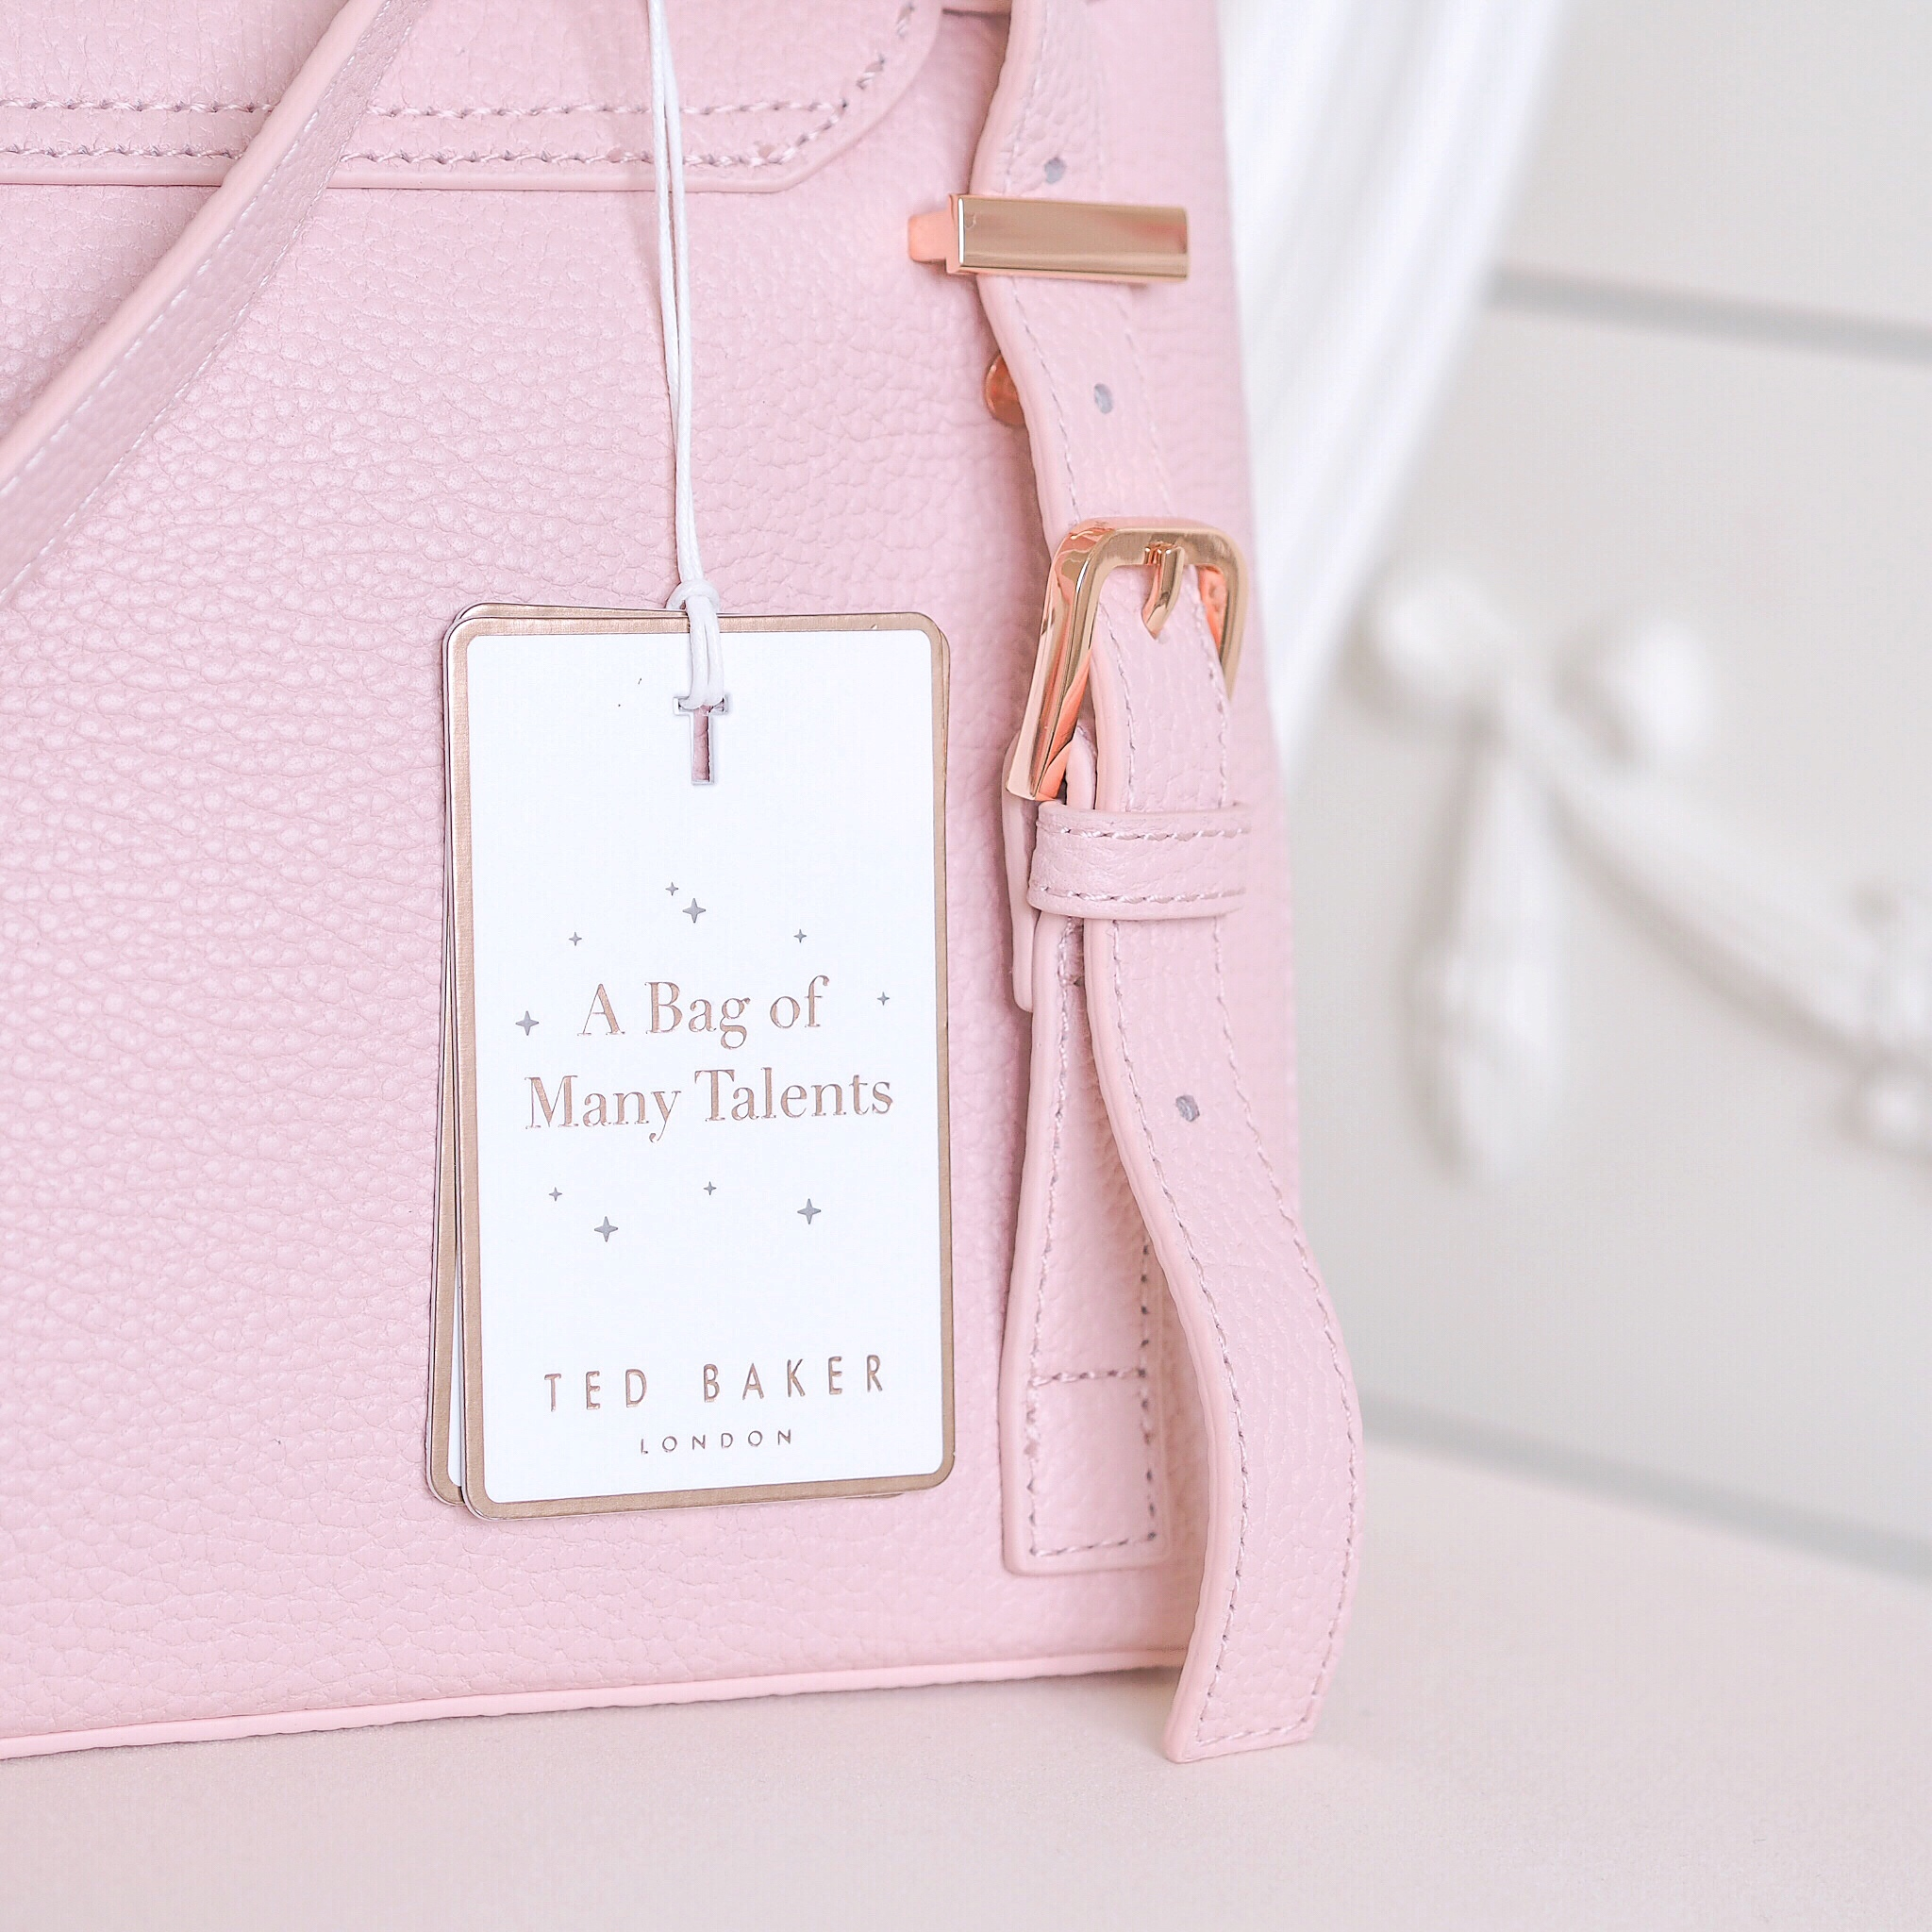 Ted Baker Pink Ruffle Bag